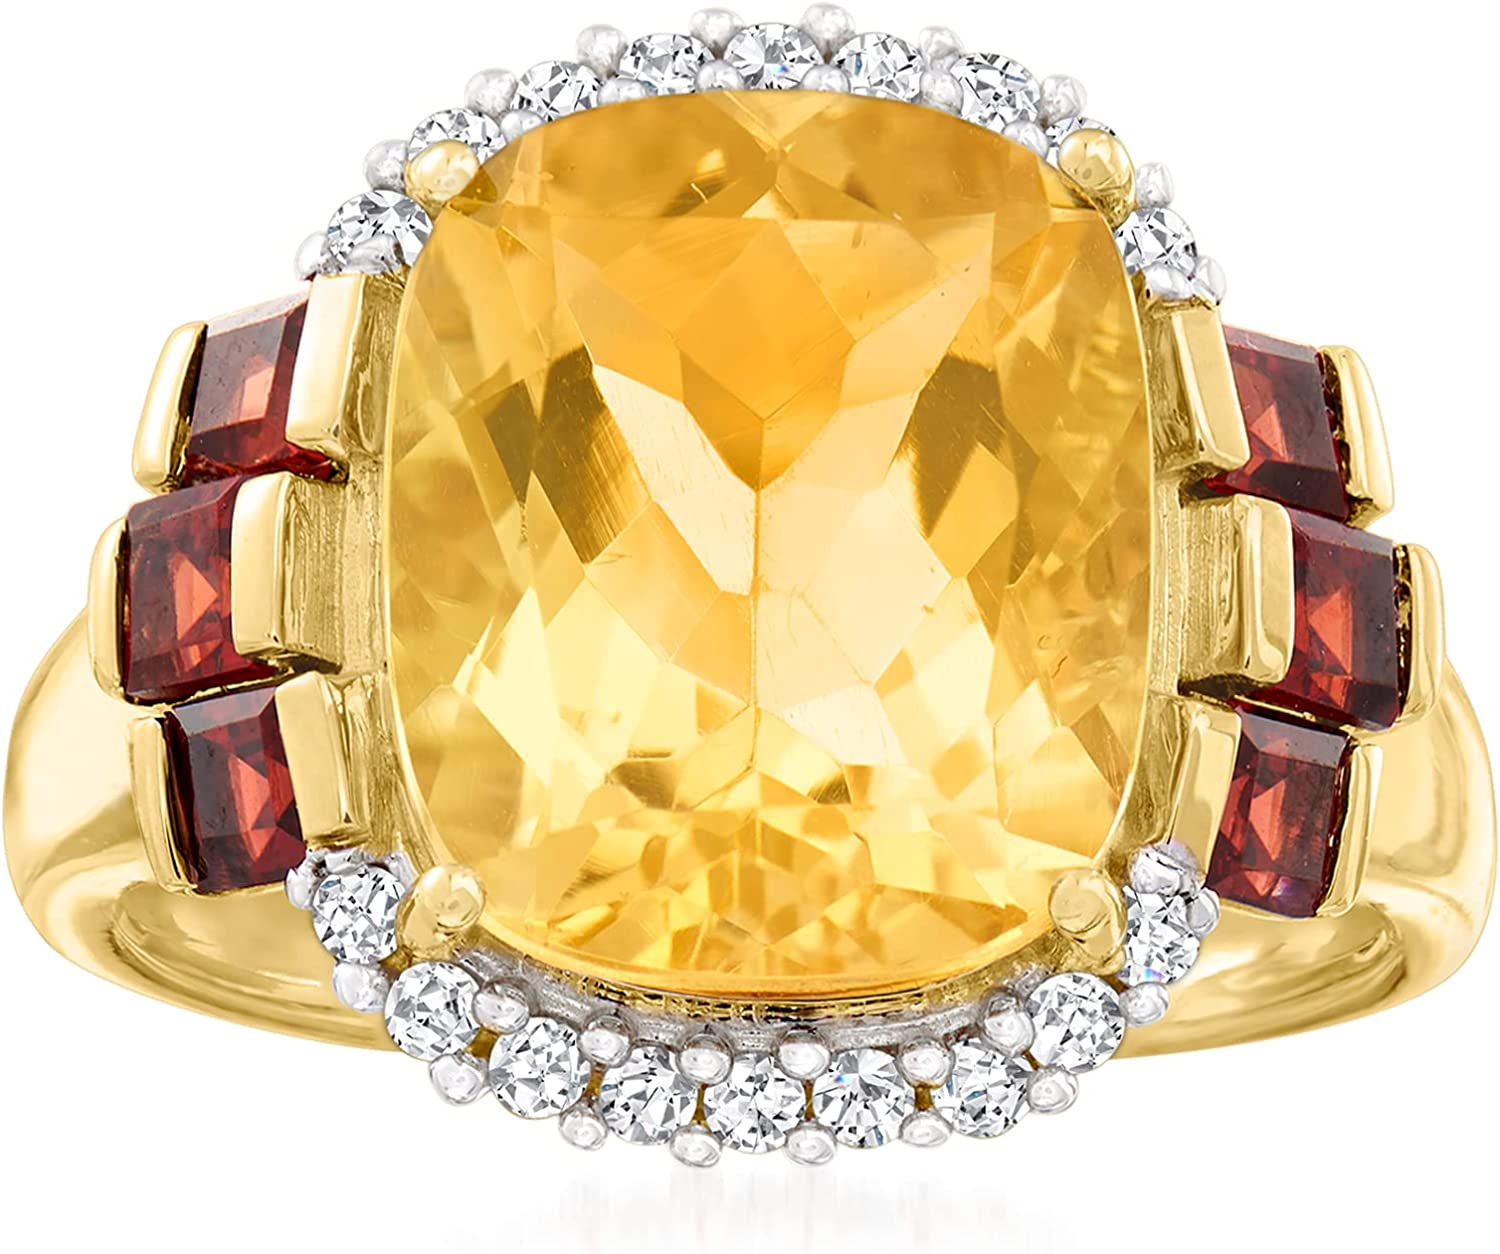 Ross-Simons 6.50 Carat Citrine.70 ct. t.w. Garnet and .18 ct. t.w. Diamond Ring in 14kt Yellow Gold